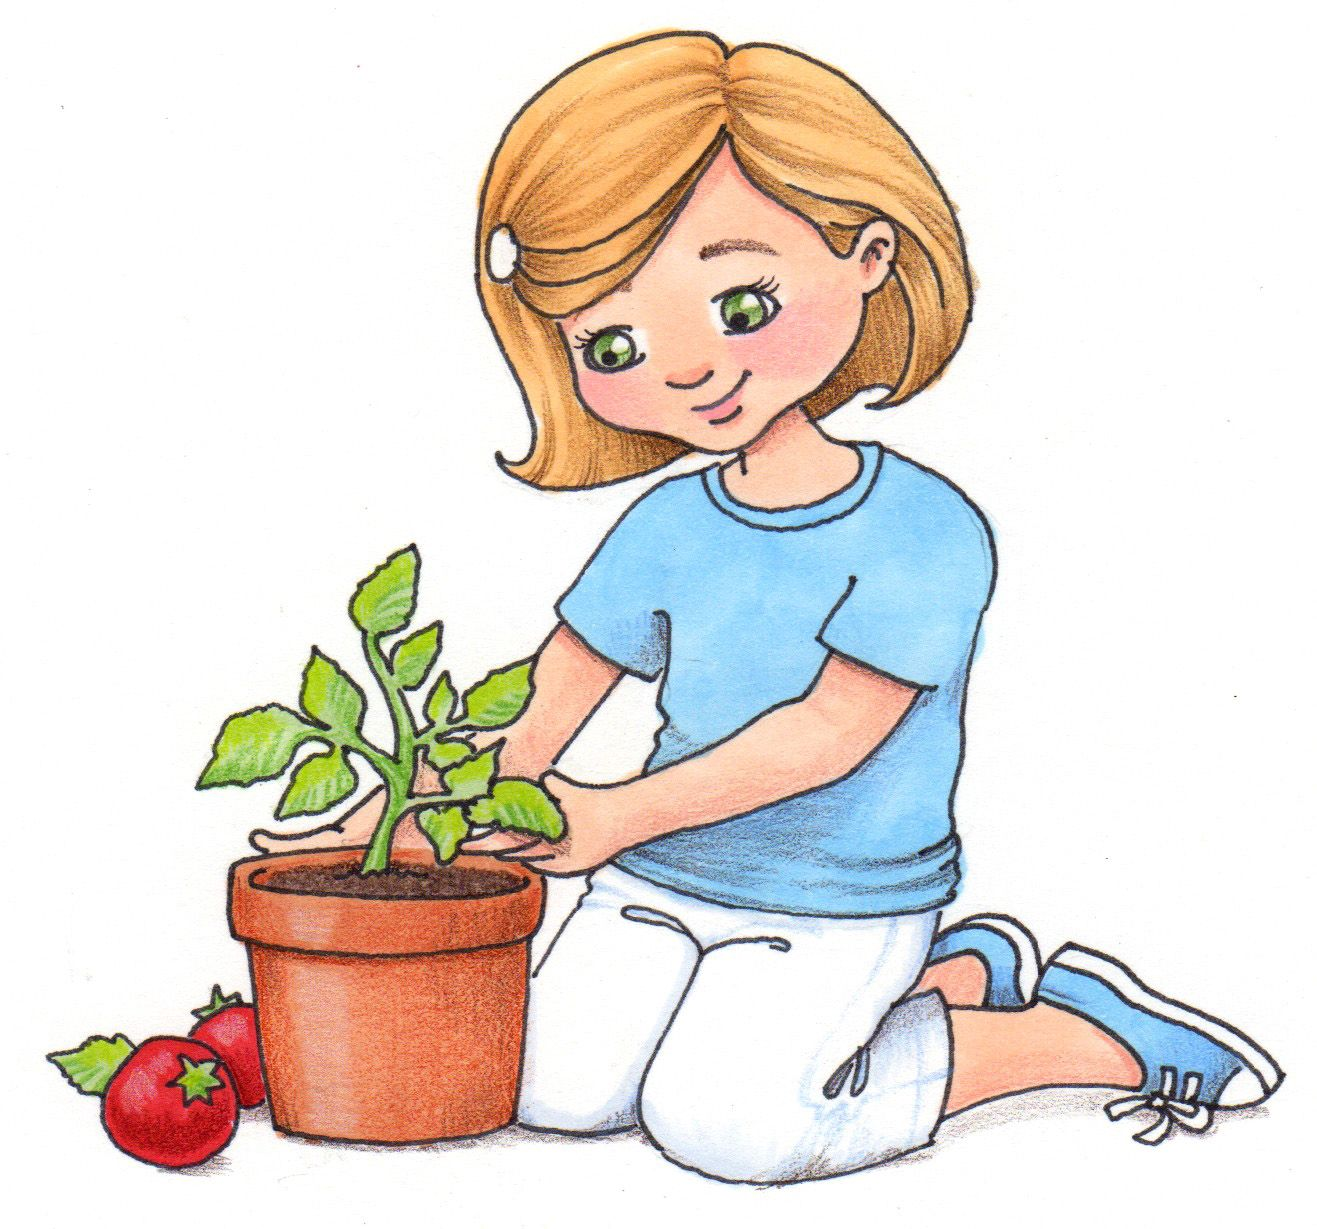 susan fitch design: How is your tomato plant?.